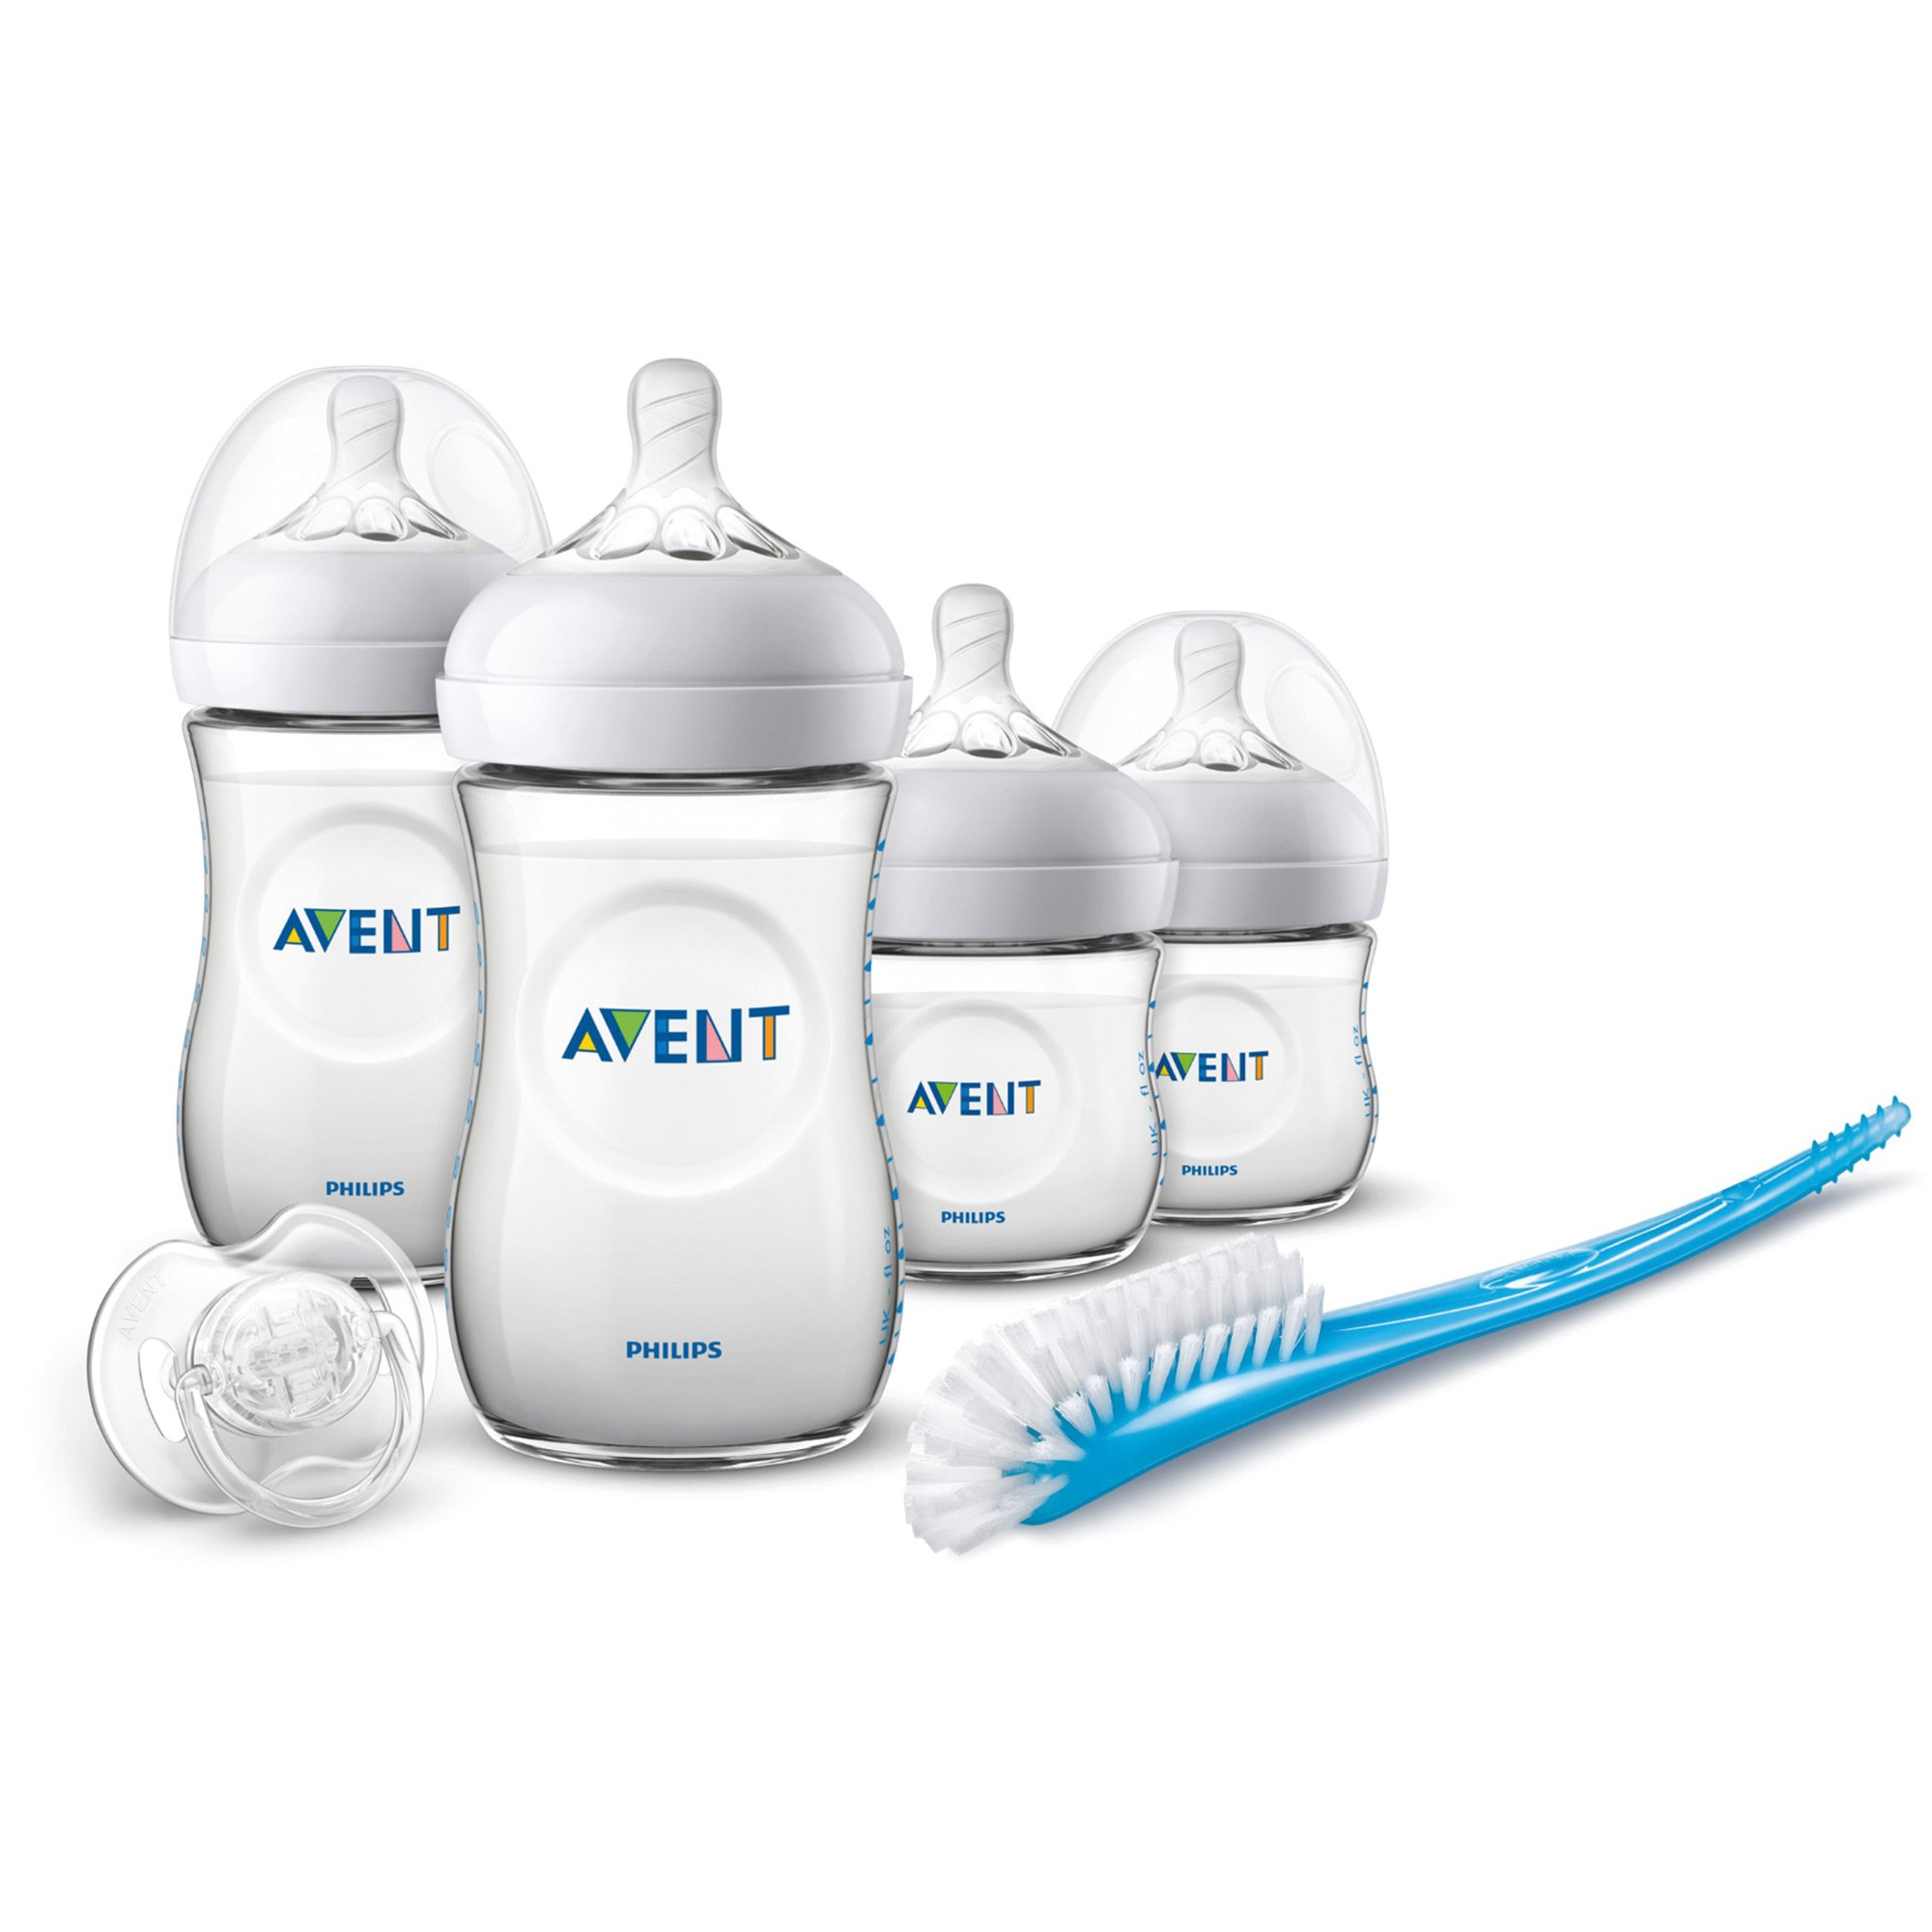 Kit Nouveau Né Natural 2.0   125 ml - 260 ml de Philips AVENT